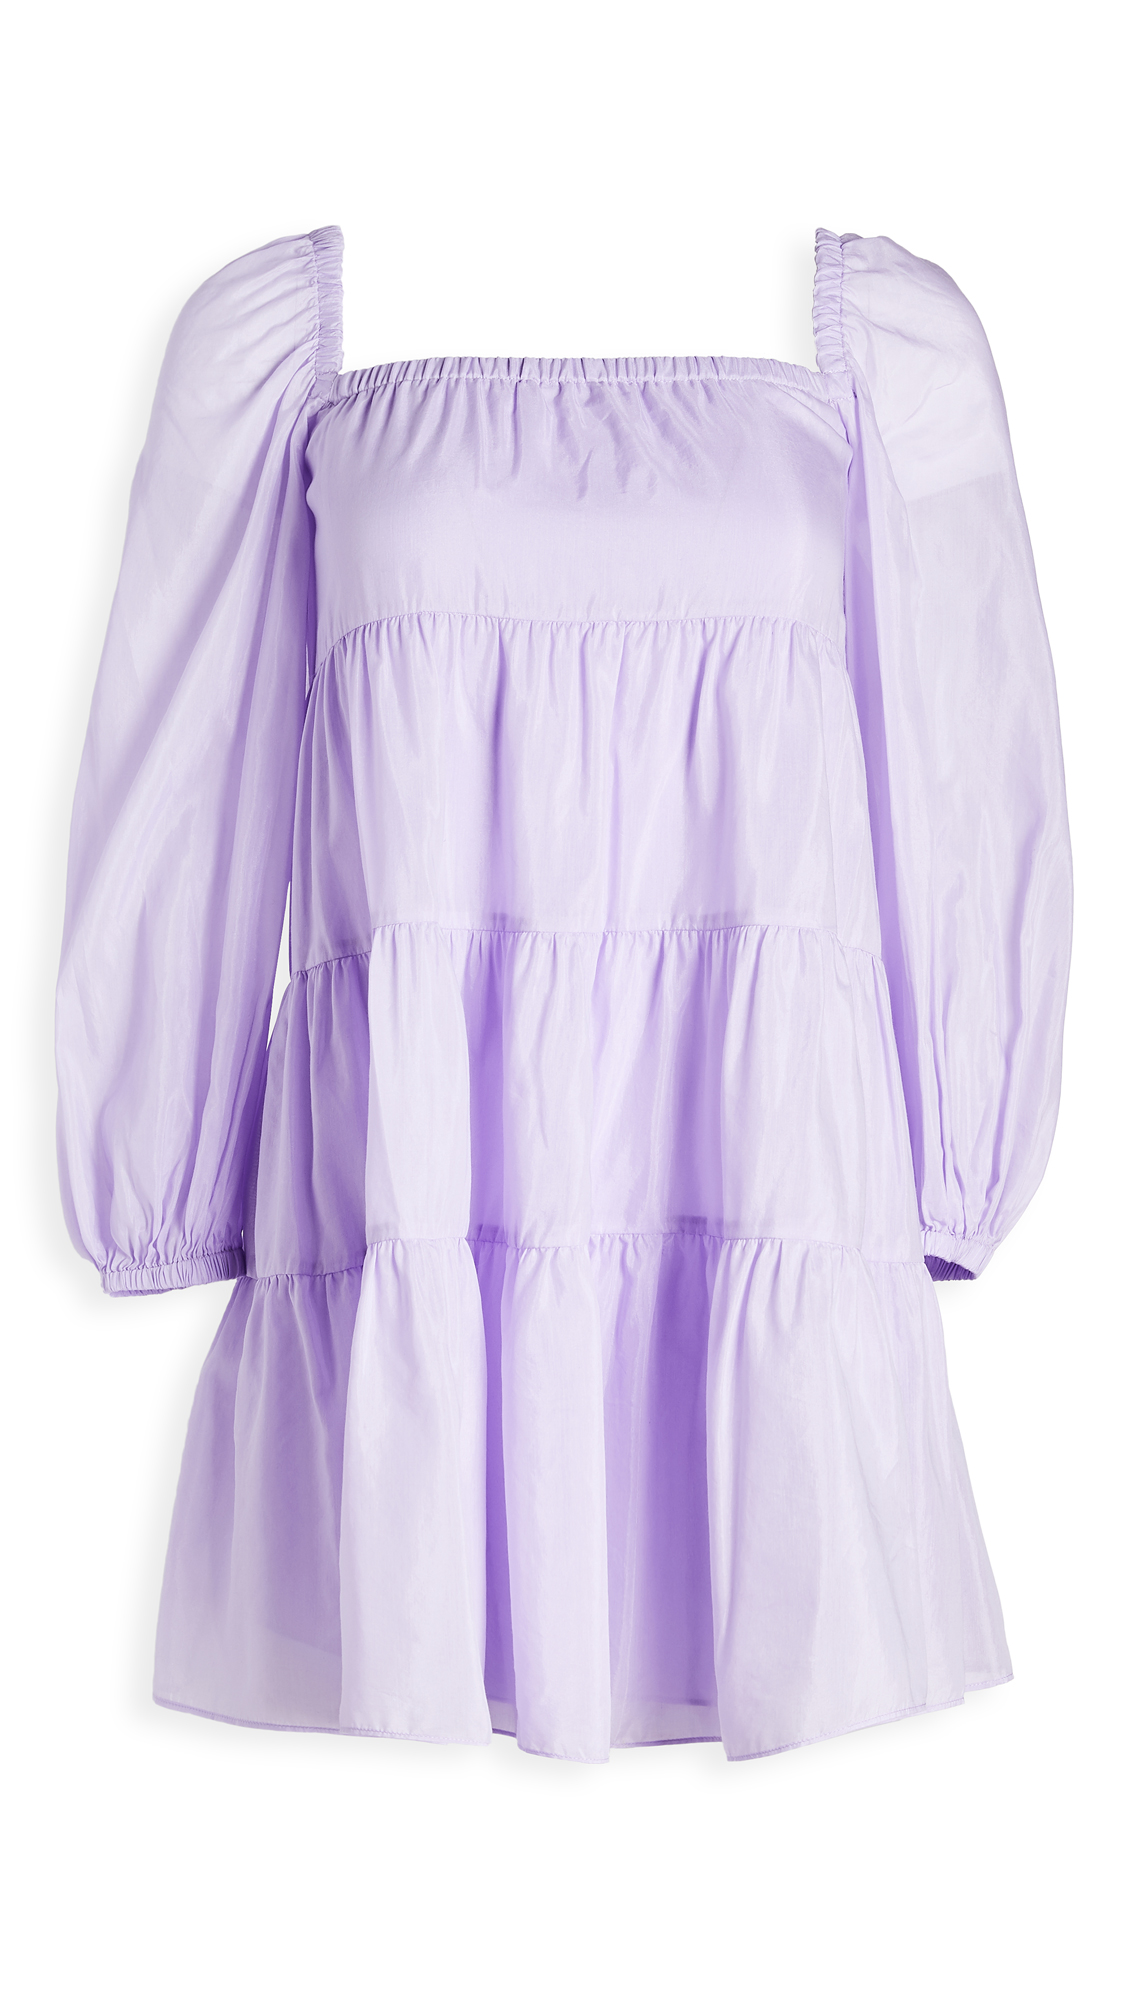 alice + olivia Rowen Tiered Square Neck Dress